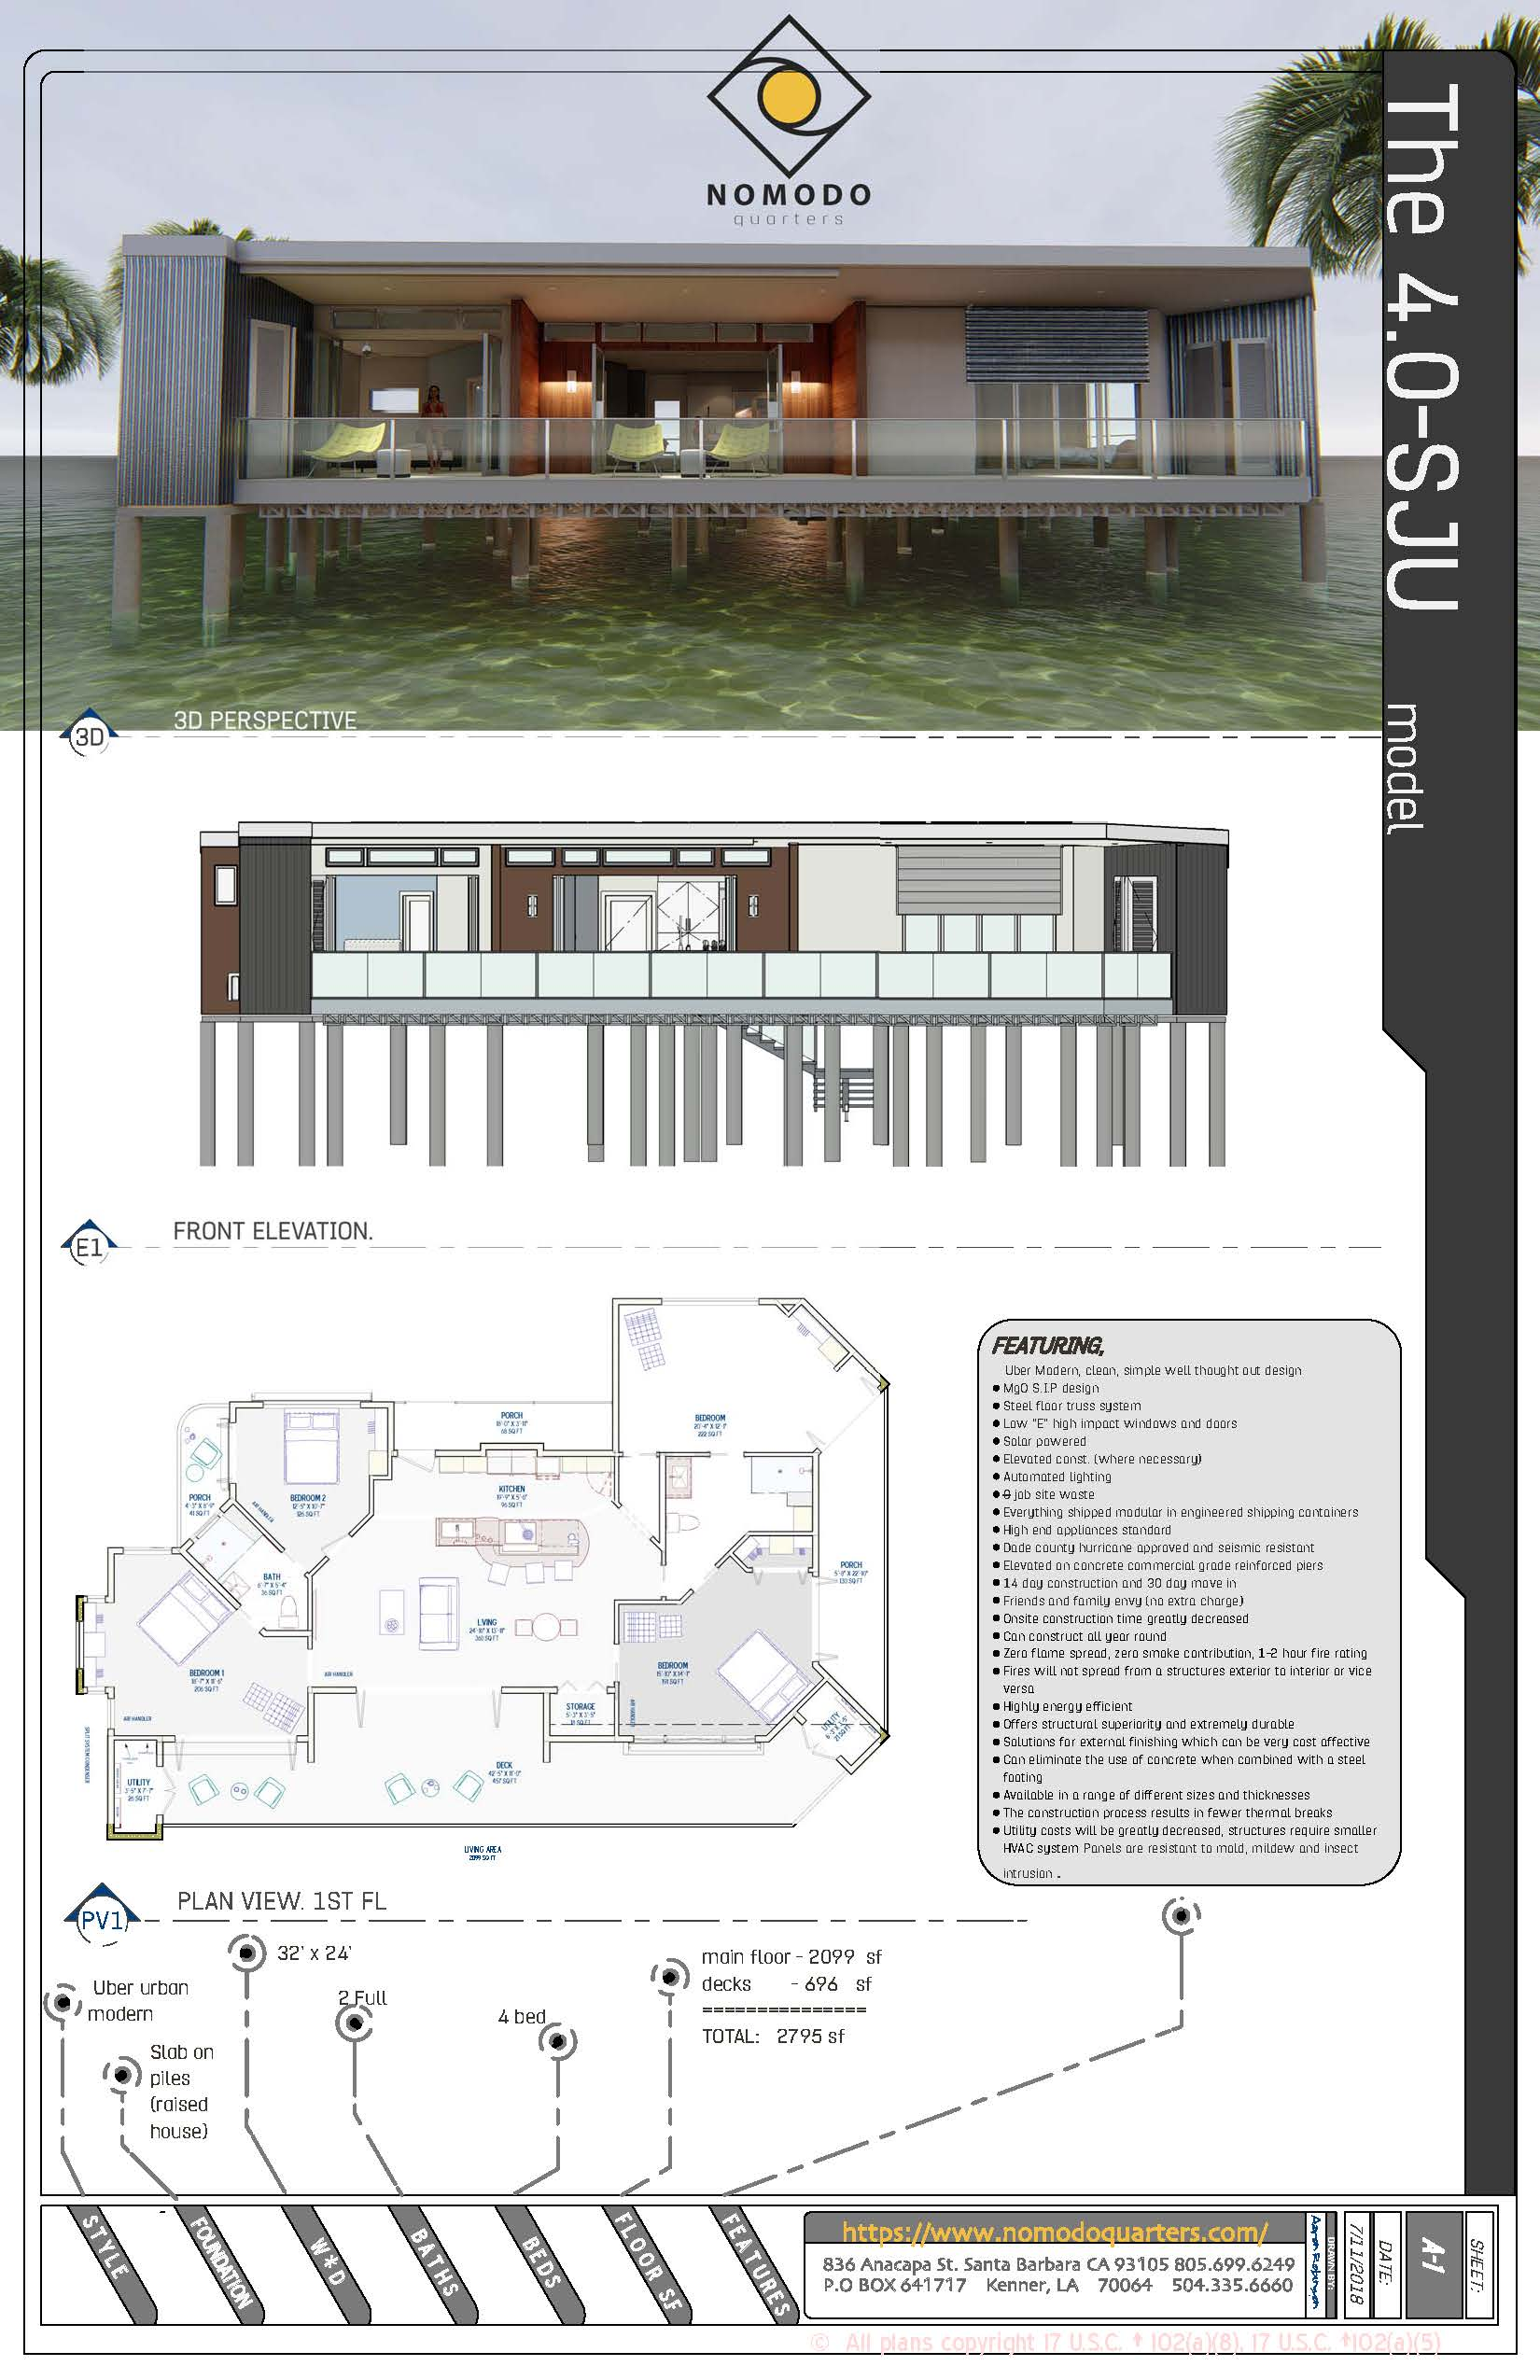 Uber Modern, 4 bedroom clean, simple well thought out designParty level model - sub $400k -